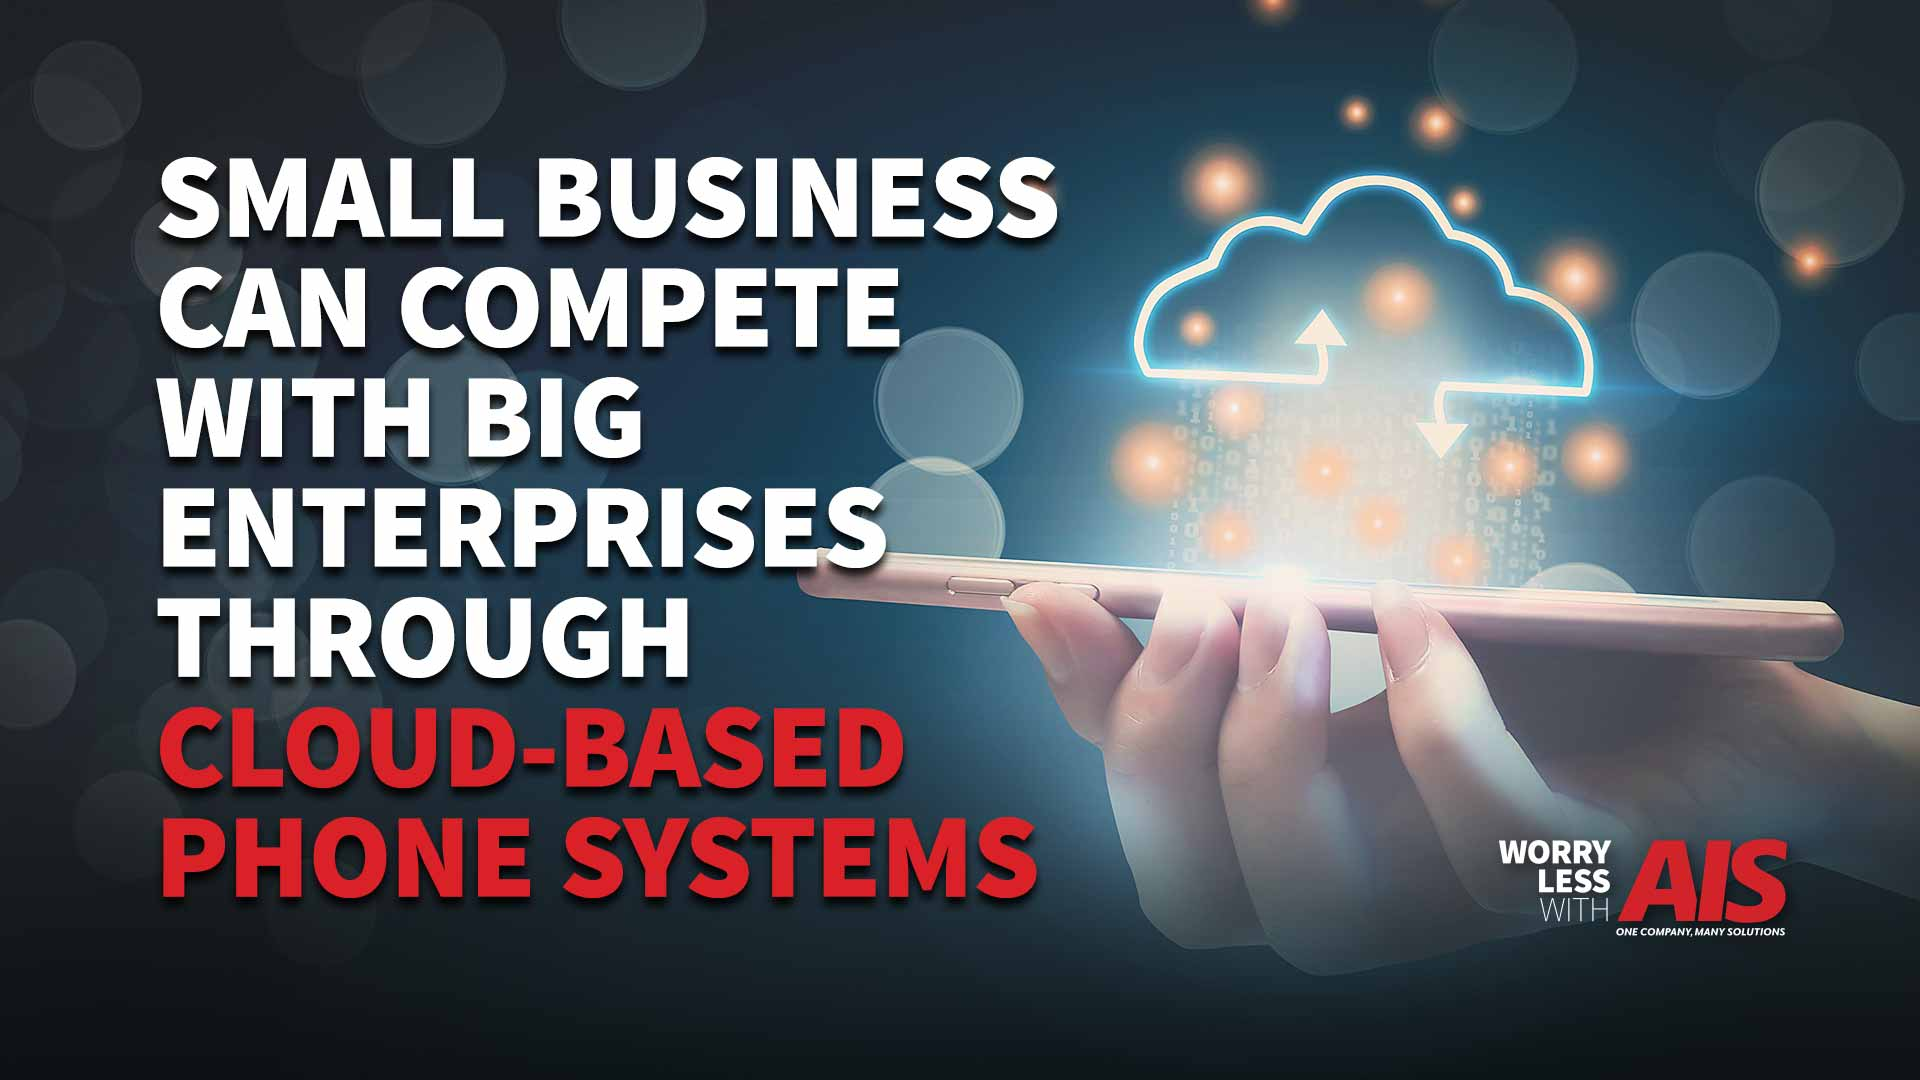 small-business-compete-big-enterprises-cloud-based-phone-system